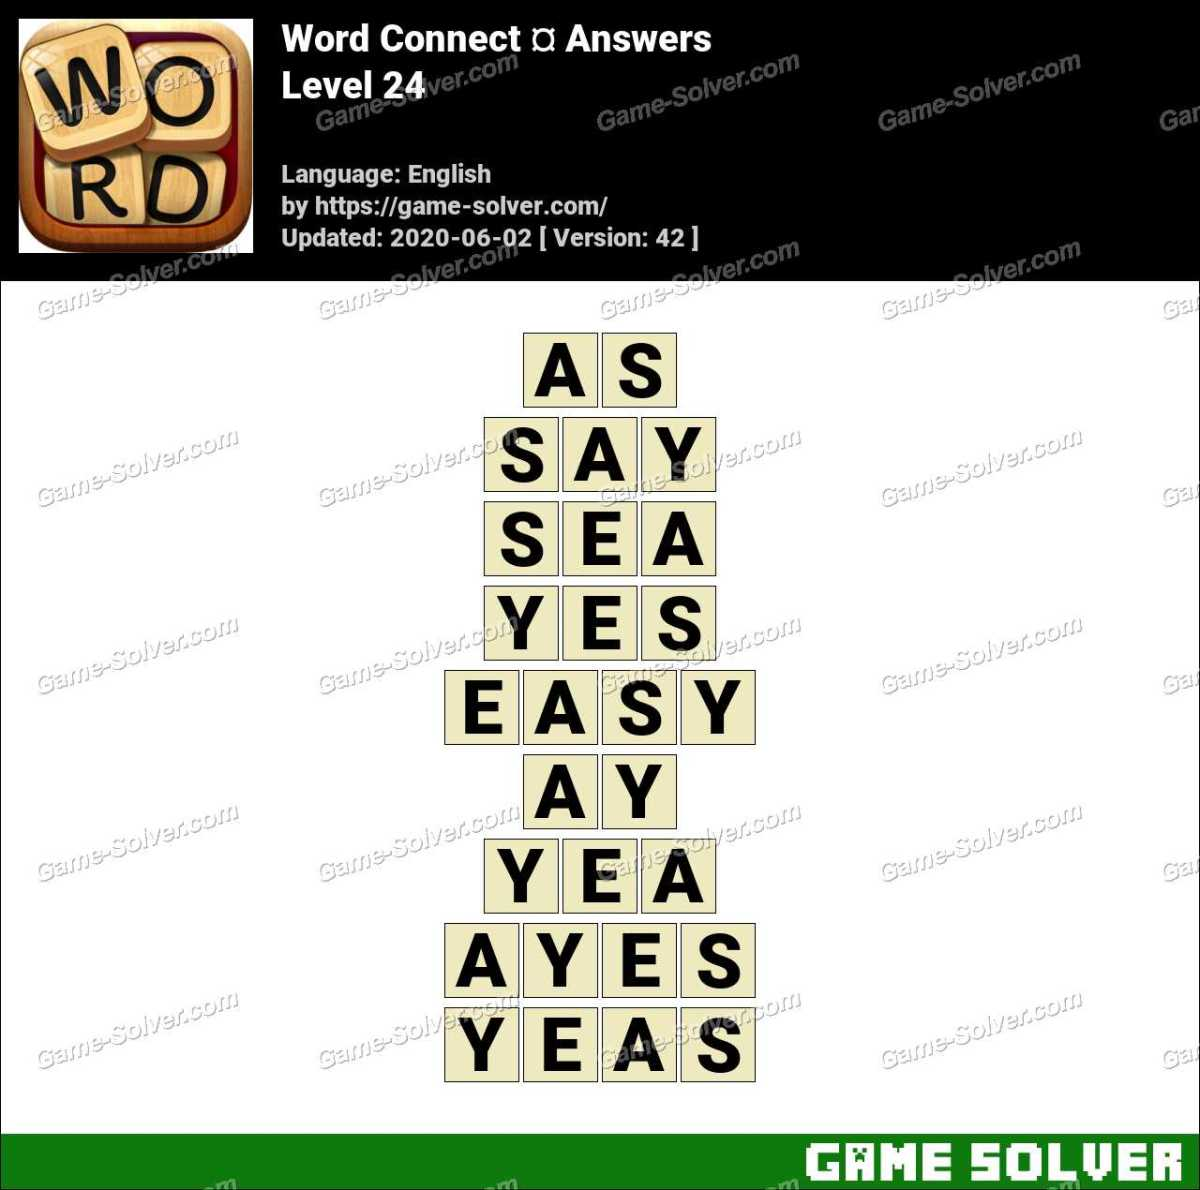 Word Connect Level 24 Answers